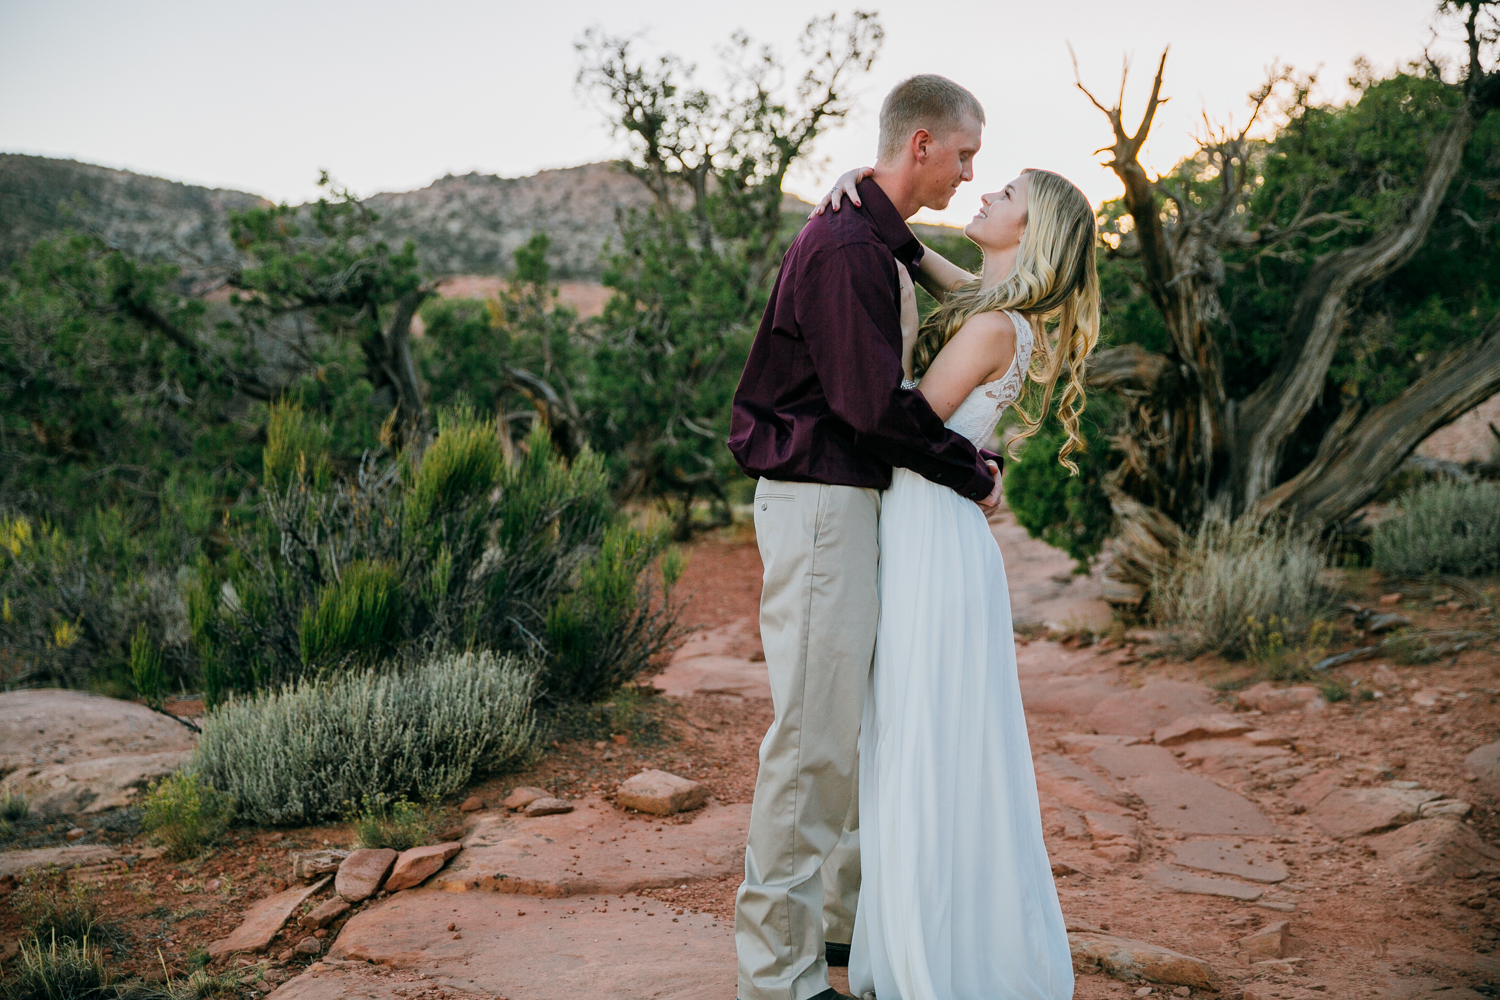 grand-junction-colorado-monument-wedding-photographer-engagements-21.jpg